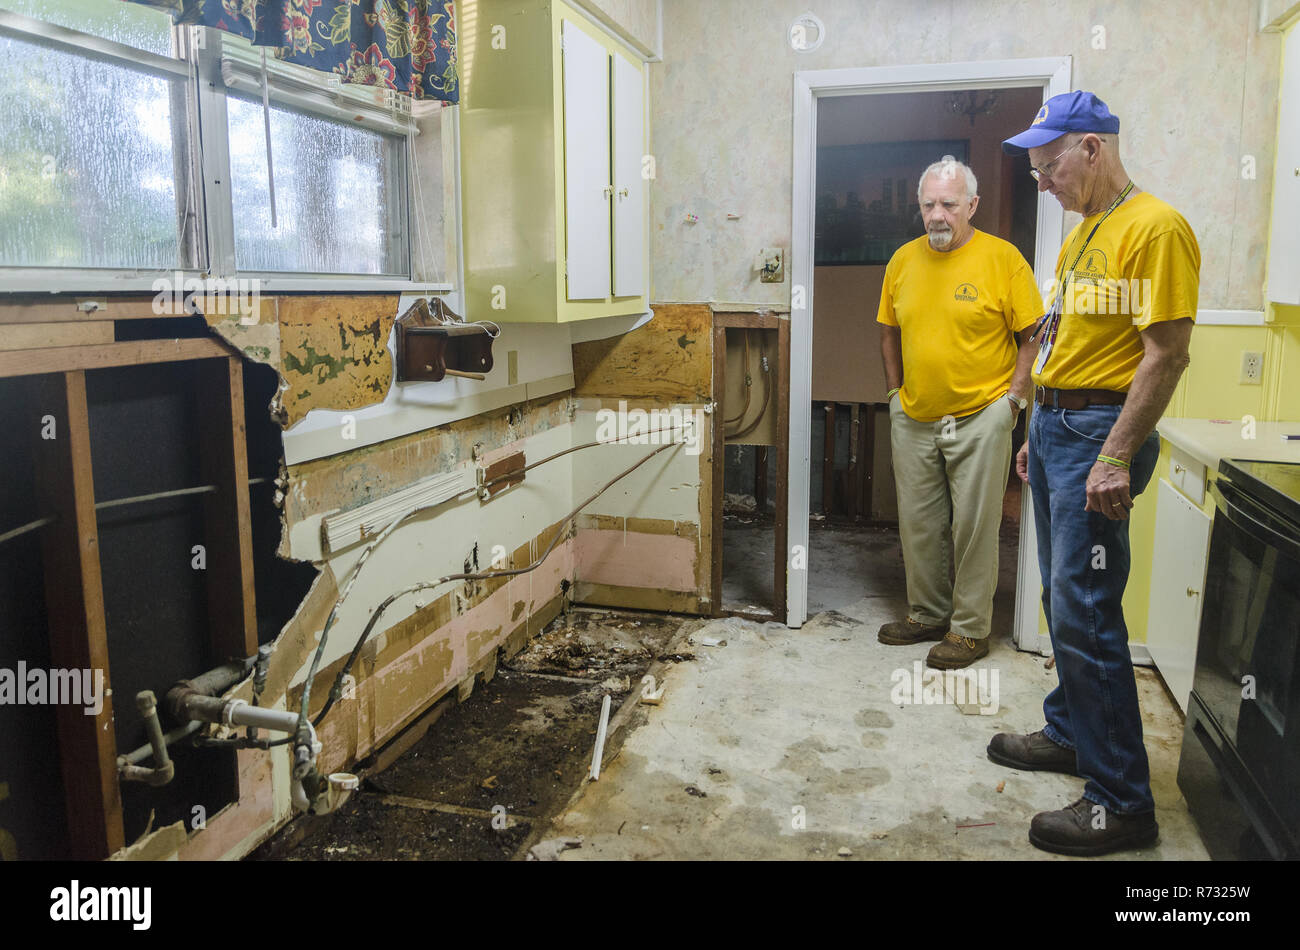 Southern Baptist Disaster Relief volunteers inspect a flood-damaged wall after a flood in Baton Rouge, Louisiana. - Stock Image